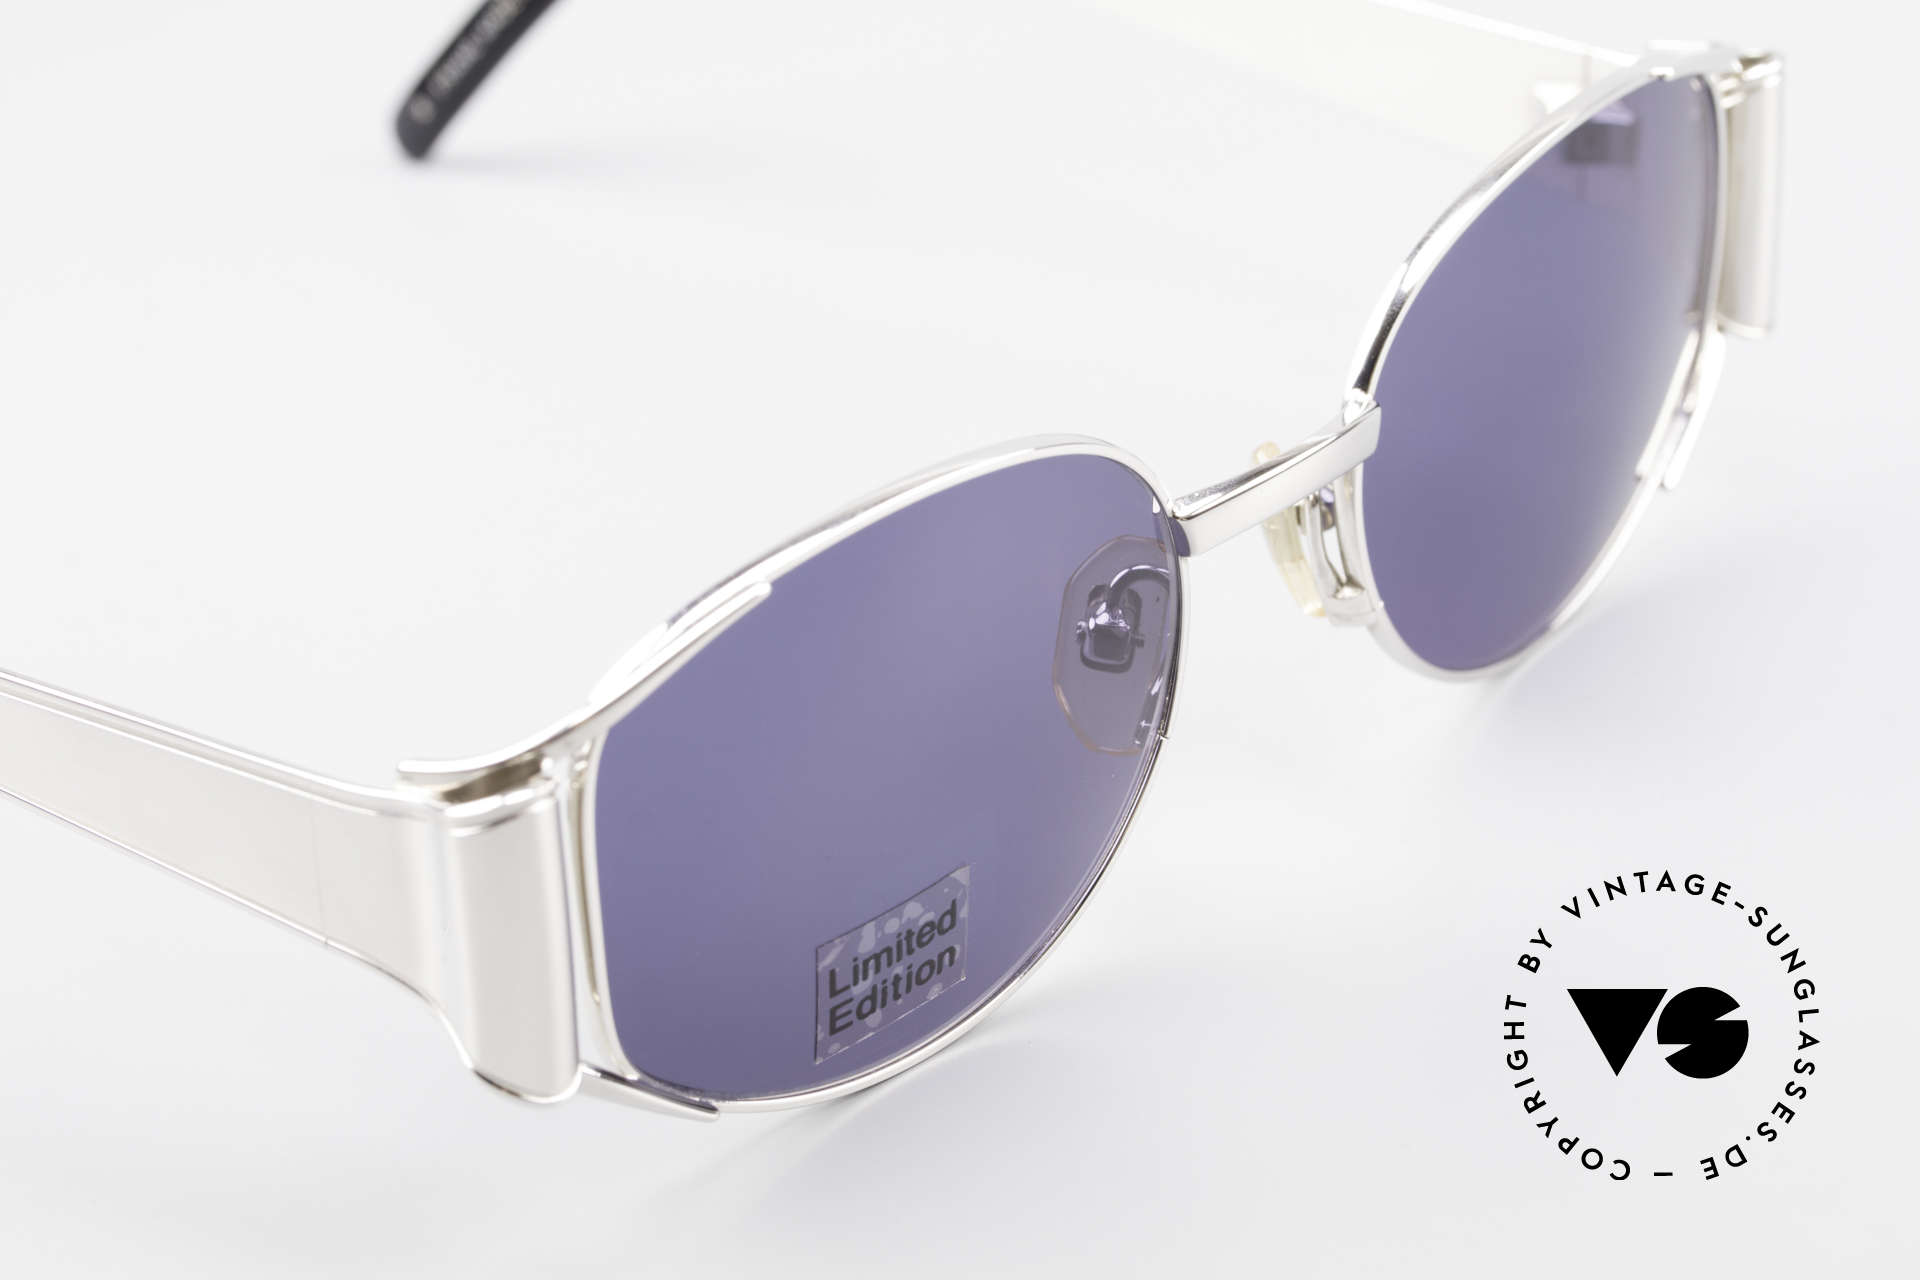 Yohji Yamamoto 52-5107 Limited Edition Sunglasses, unused (like all our Haute Couture designer sunglasses), Made for Men and Women